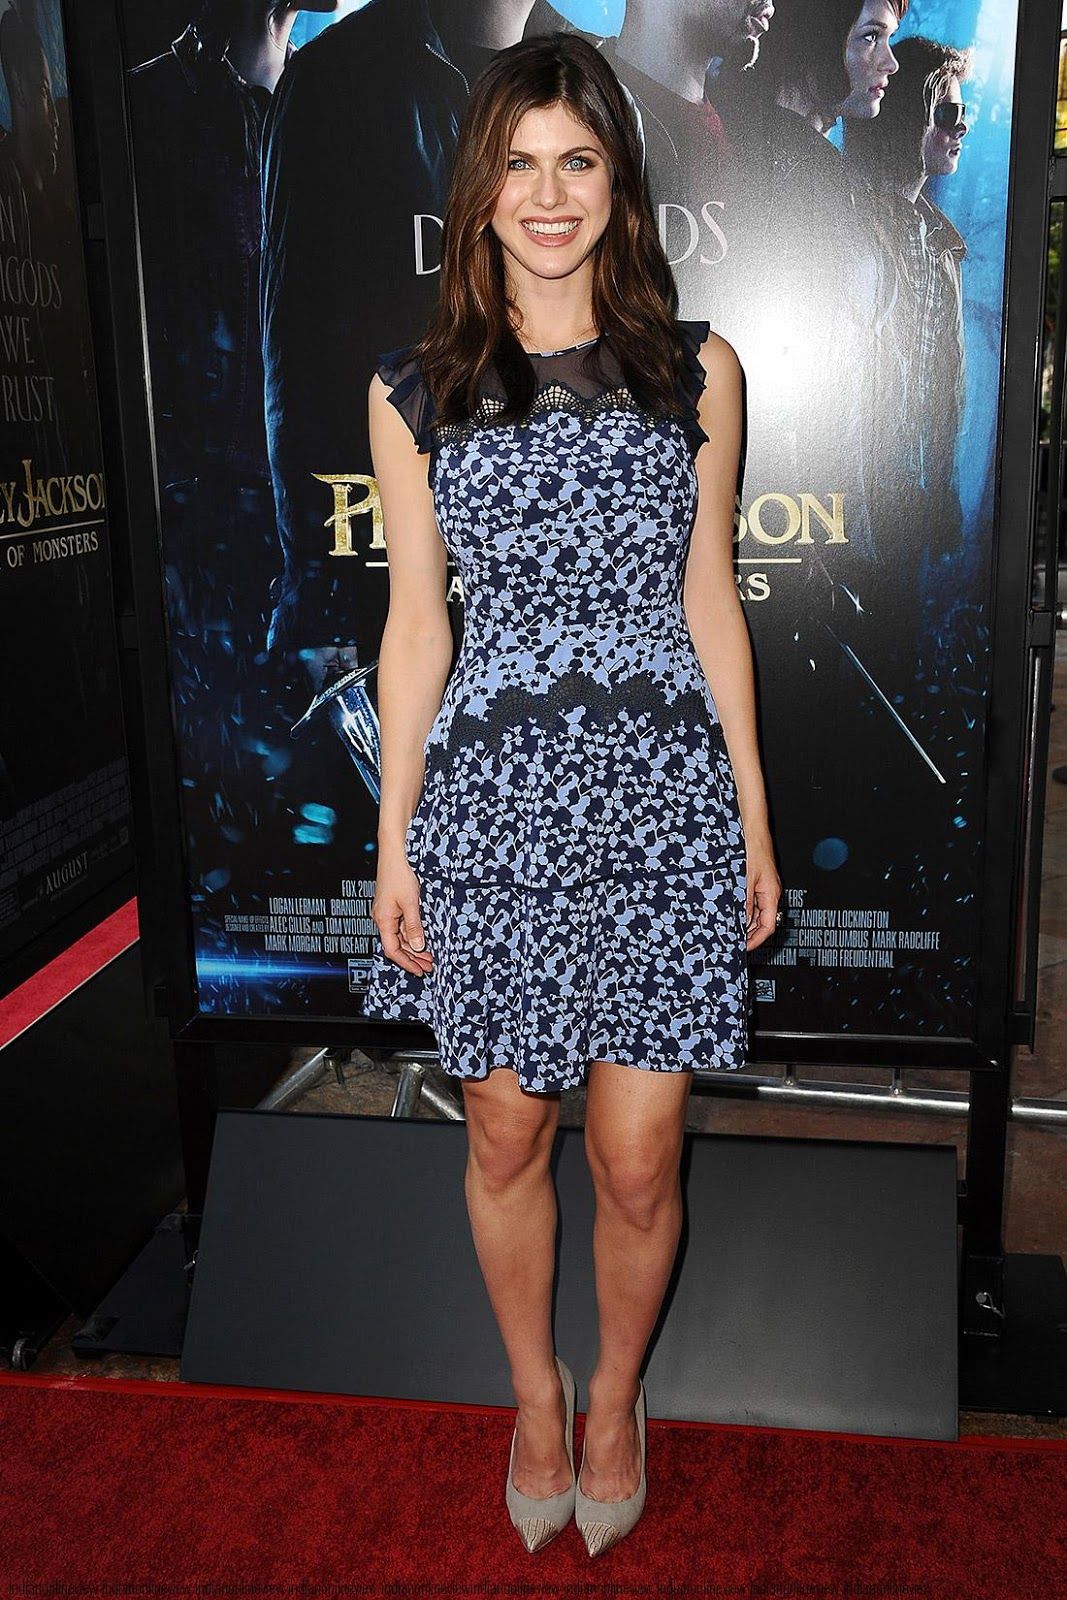 Anand Name 3d Wallpaper Alexandra Daddario At The Percy Jackson Premiere High